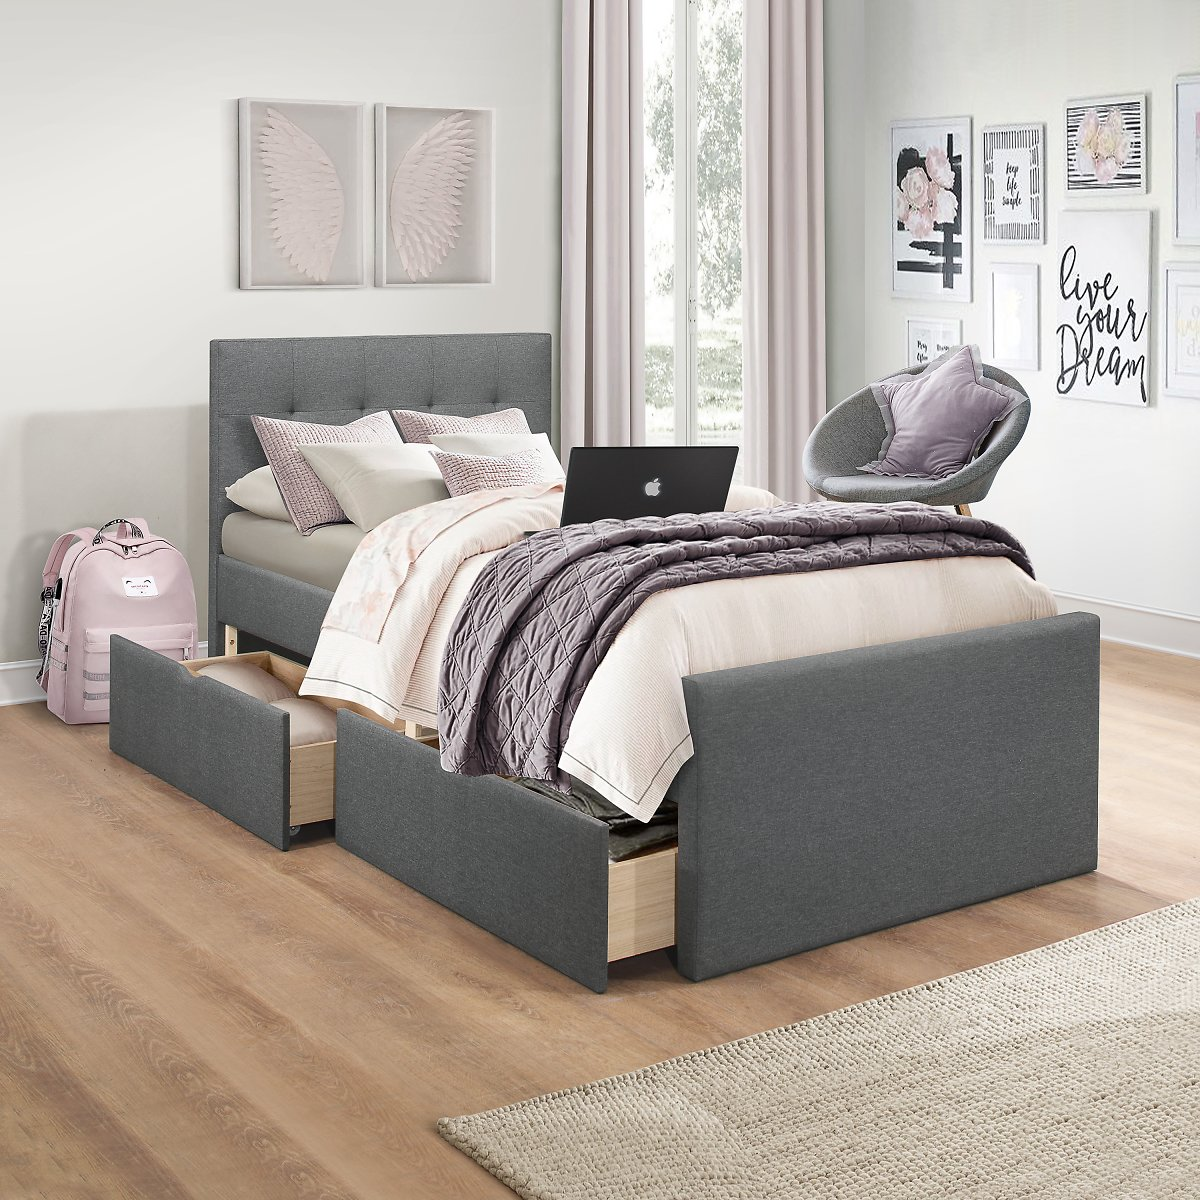 Emory Upholstered Twin Platform Bed With 2 Storage Drawers, Charcoal, By Hillsdale Living Essentials